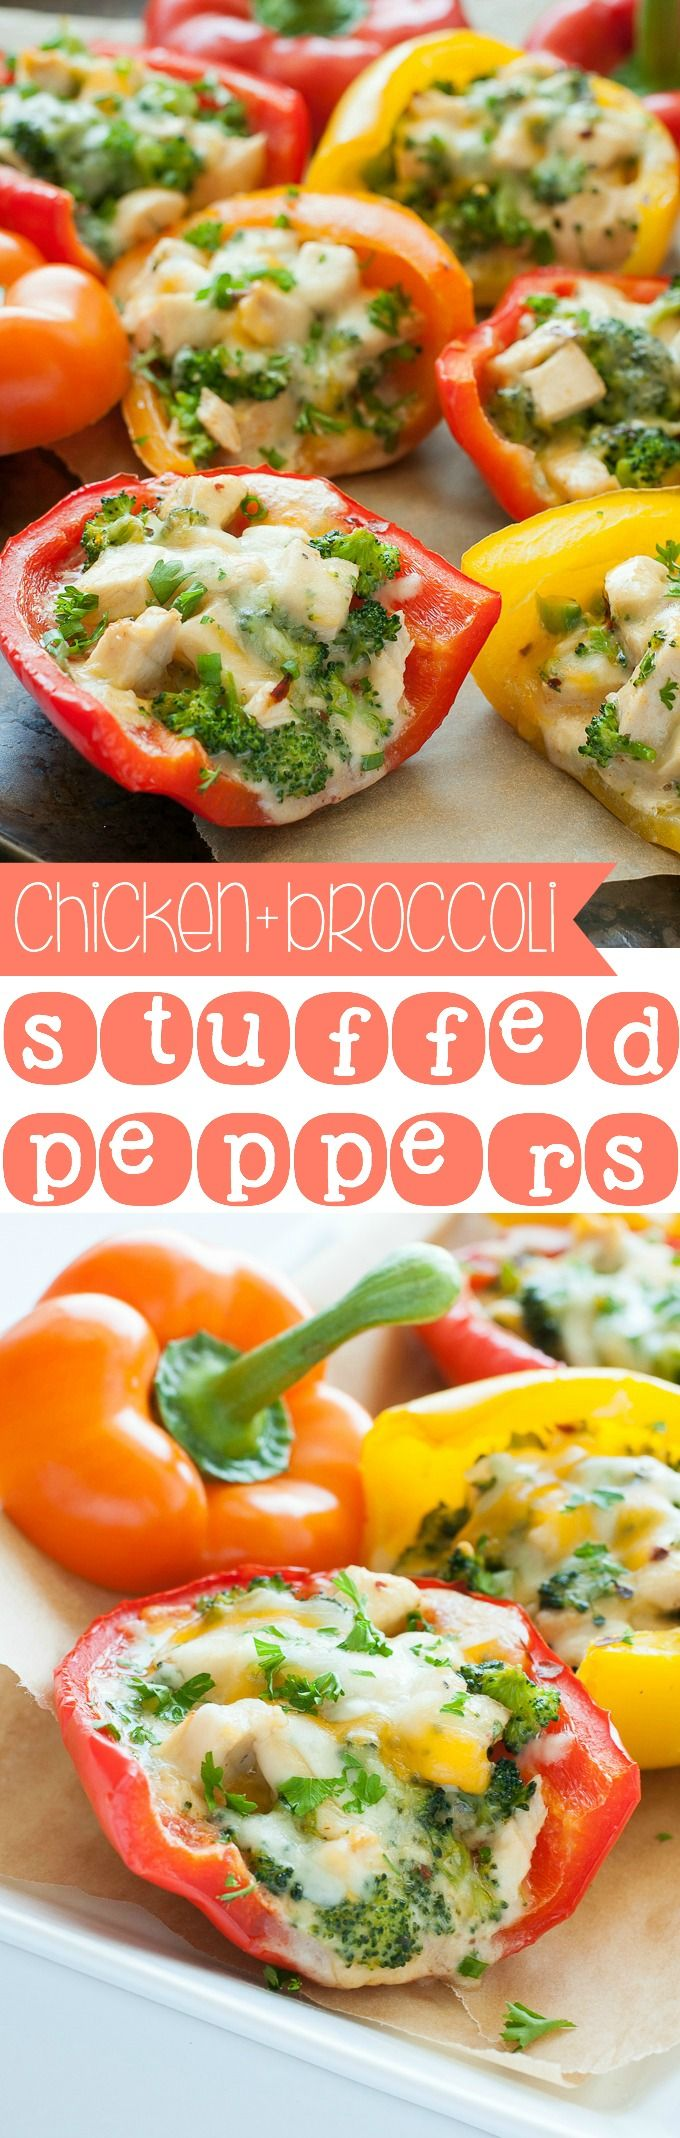 These Cheesy Chicken and Broccoli Stuffed Peppers take comfort food to the next level. Healthier than their casserole counterpart and so stinkin' tasty!